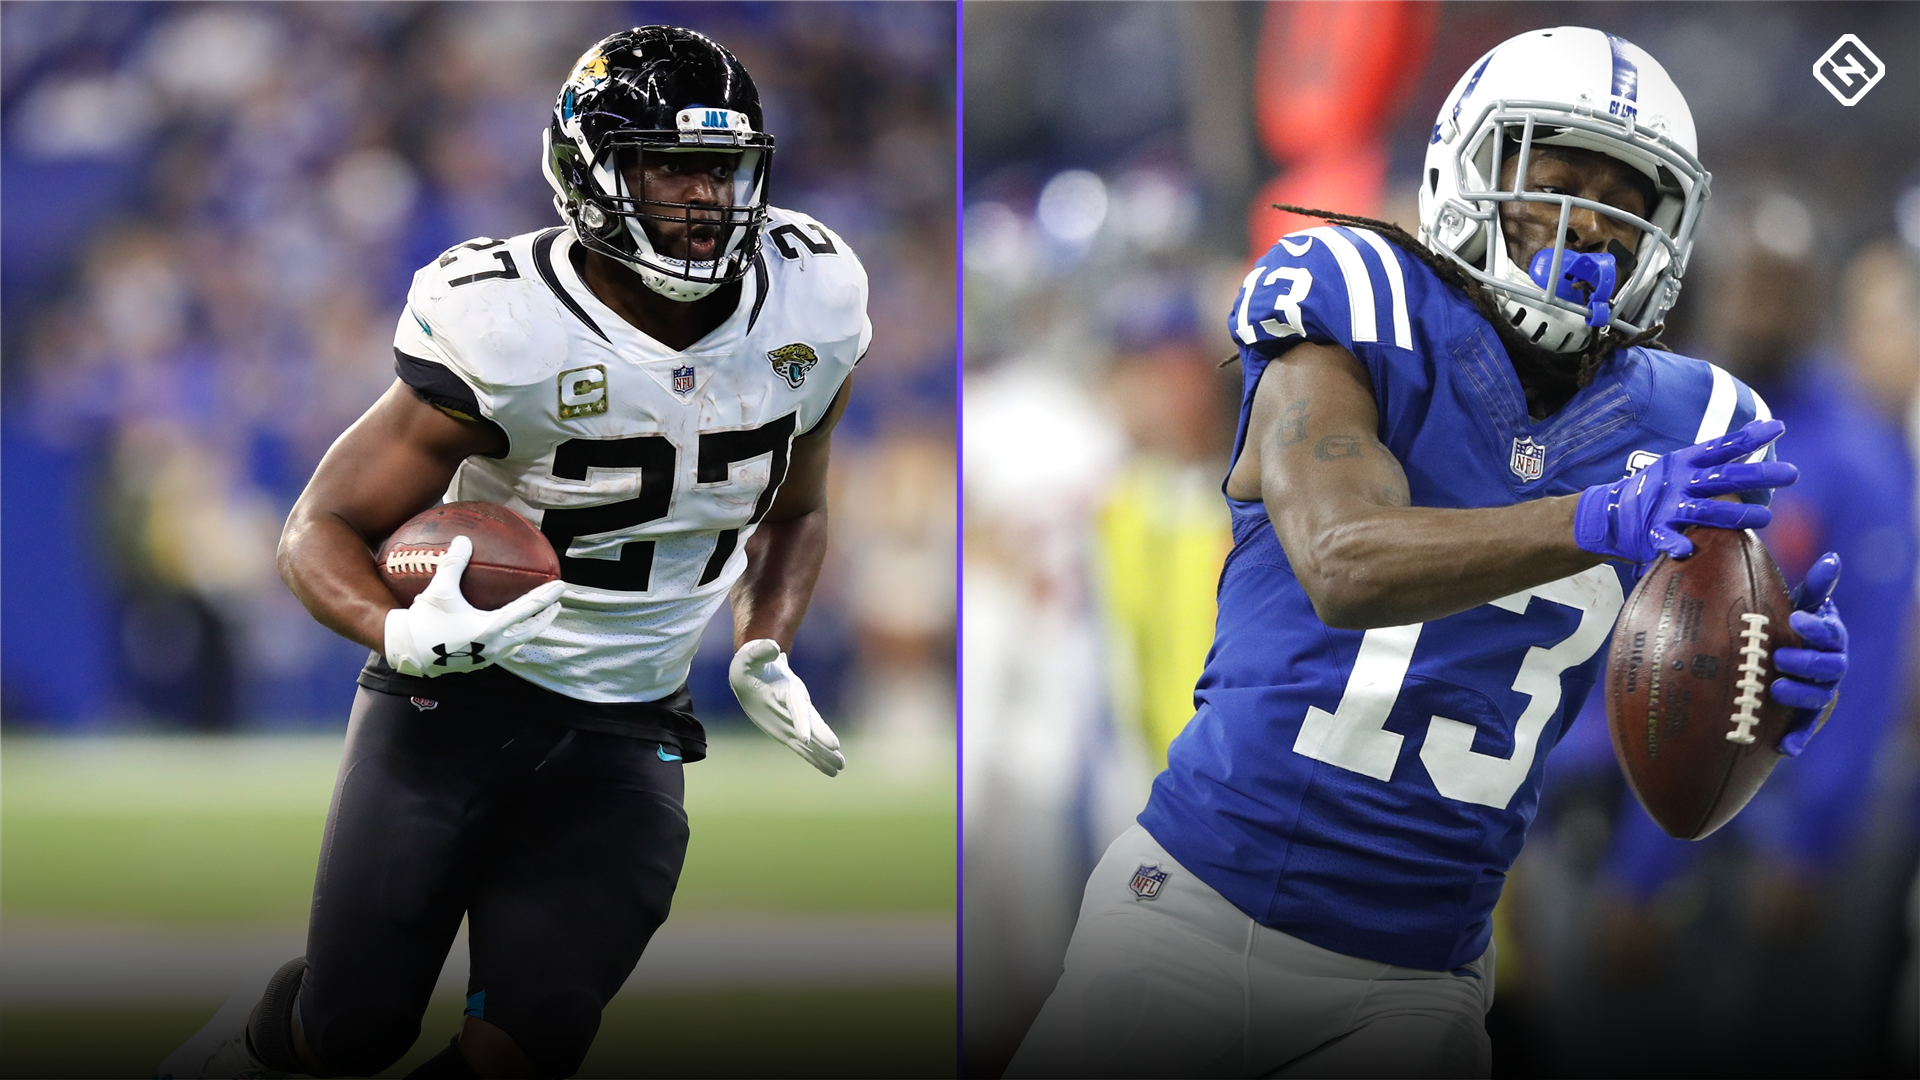 Potential fantasy busts who move down PPR rankings